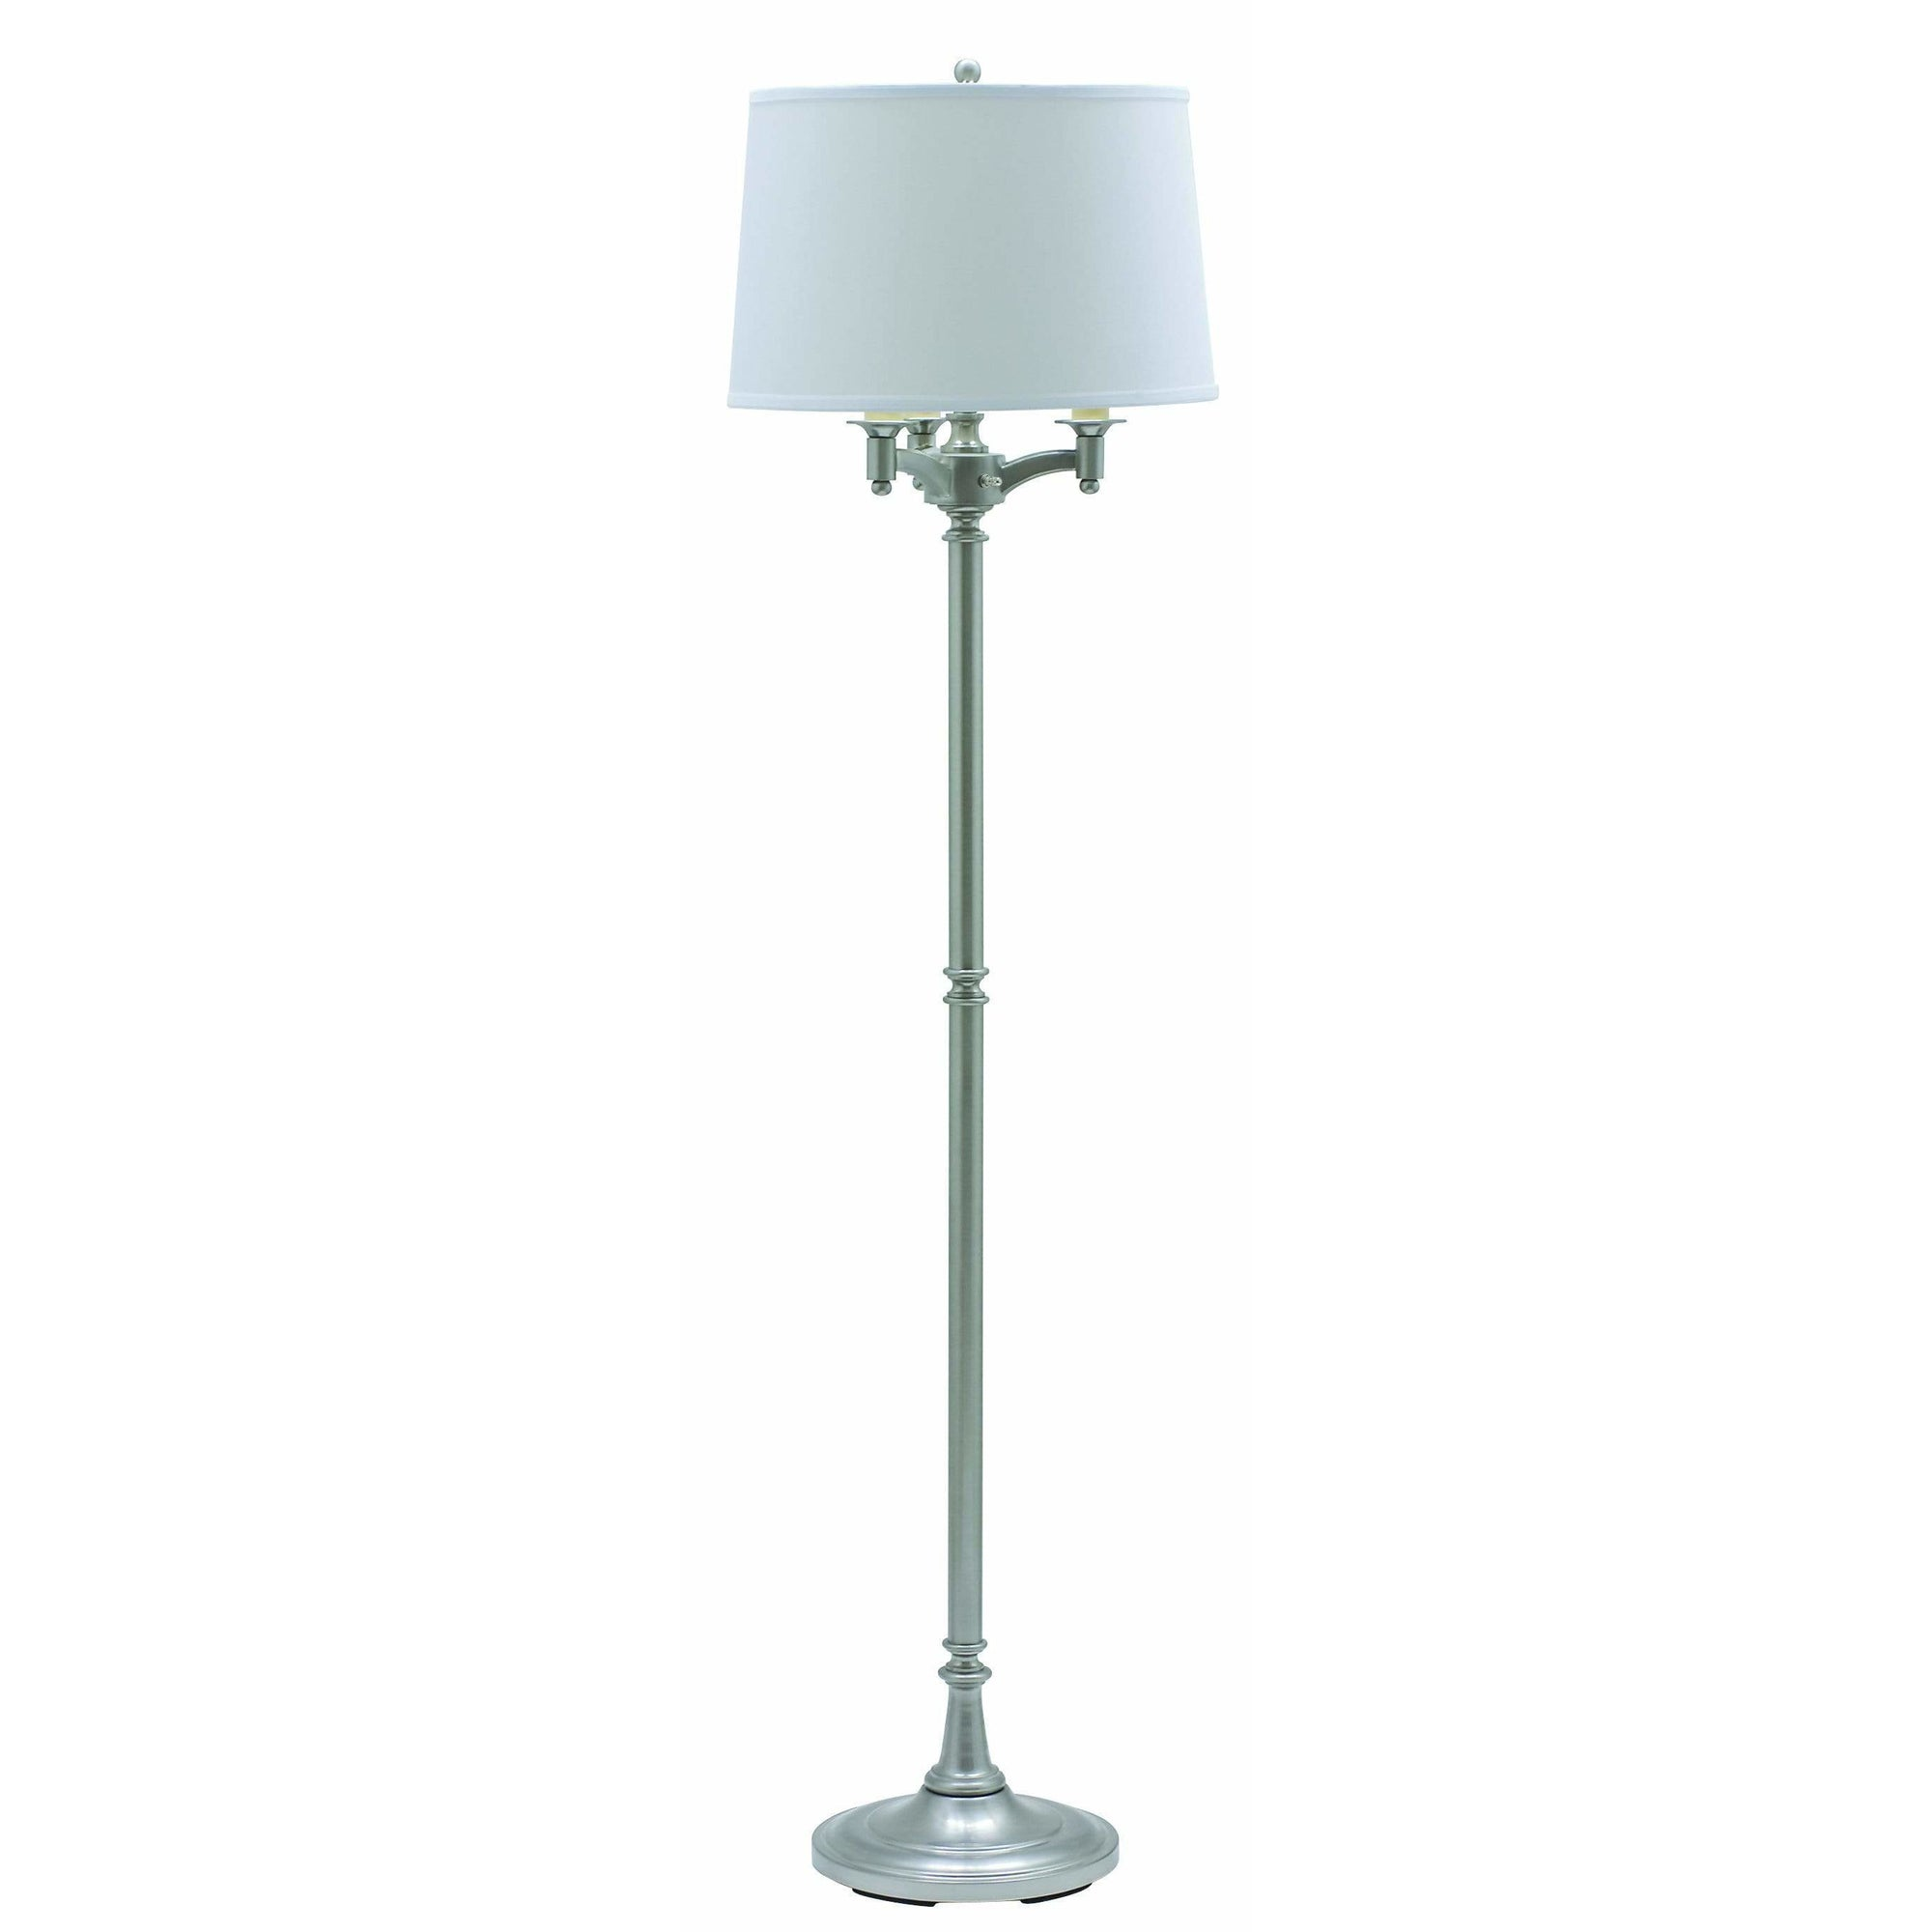 House Of Troy Floor Lamps Lancaster Six-Way Floor Lamp by House Of Troy L800-SN